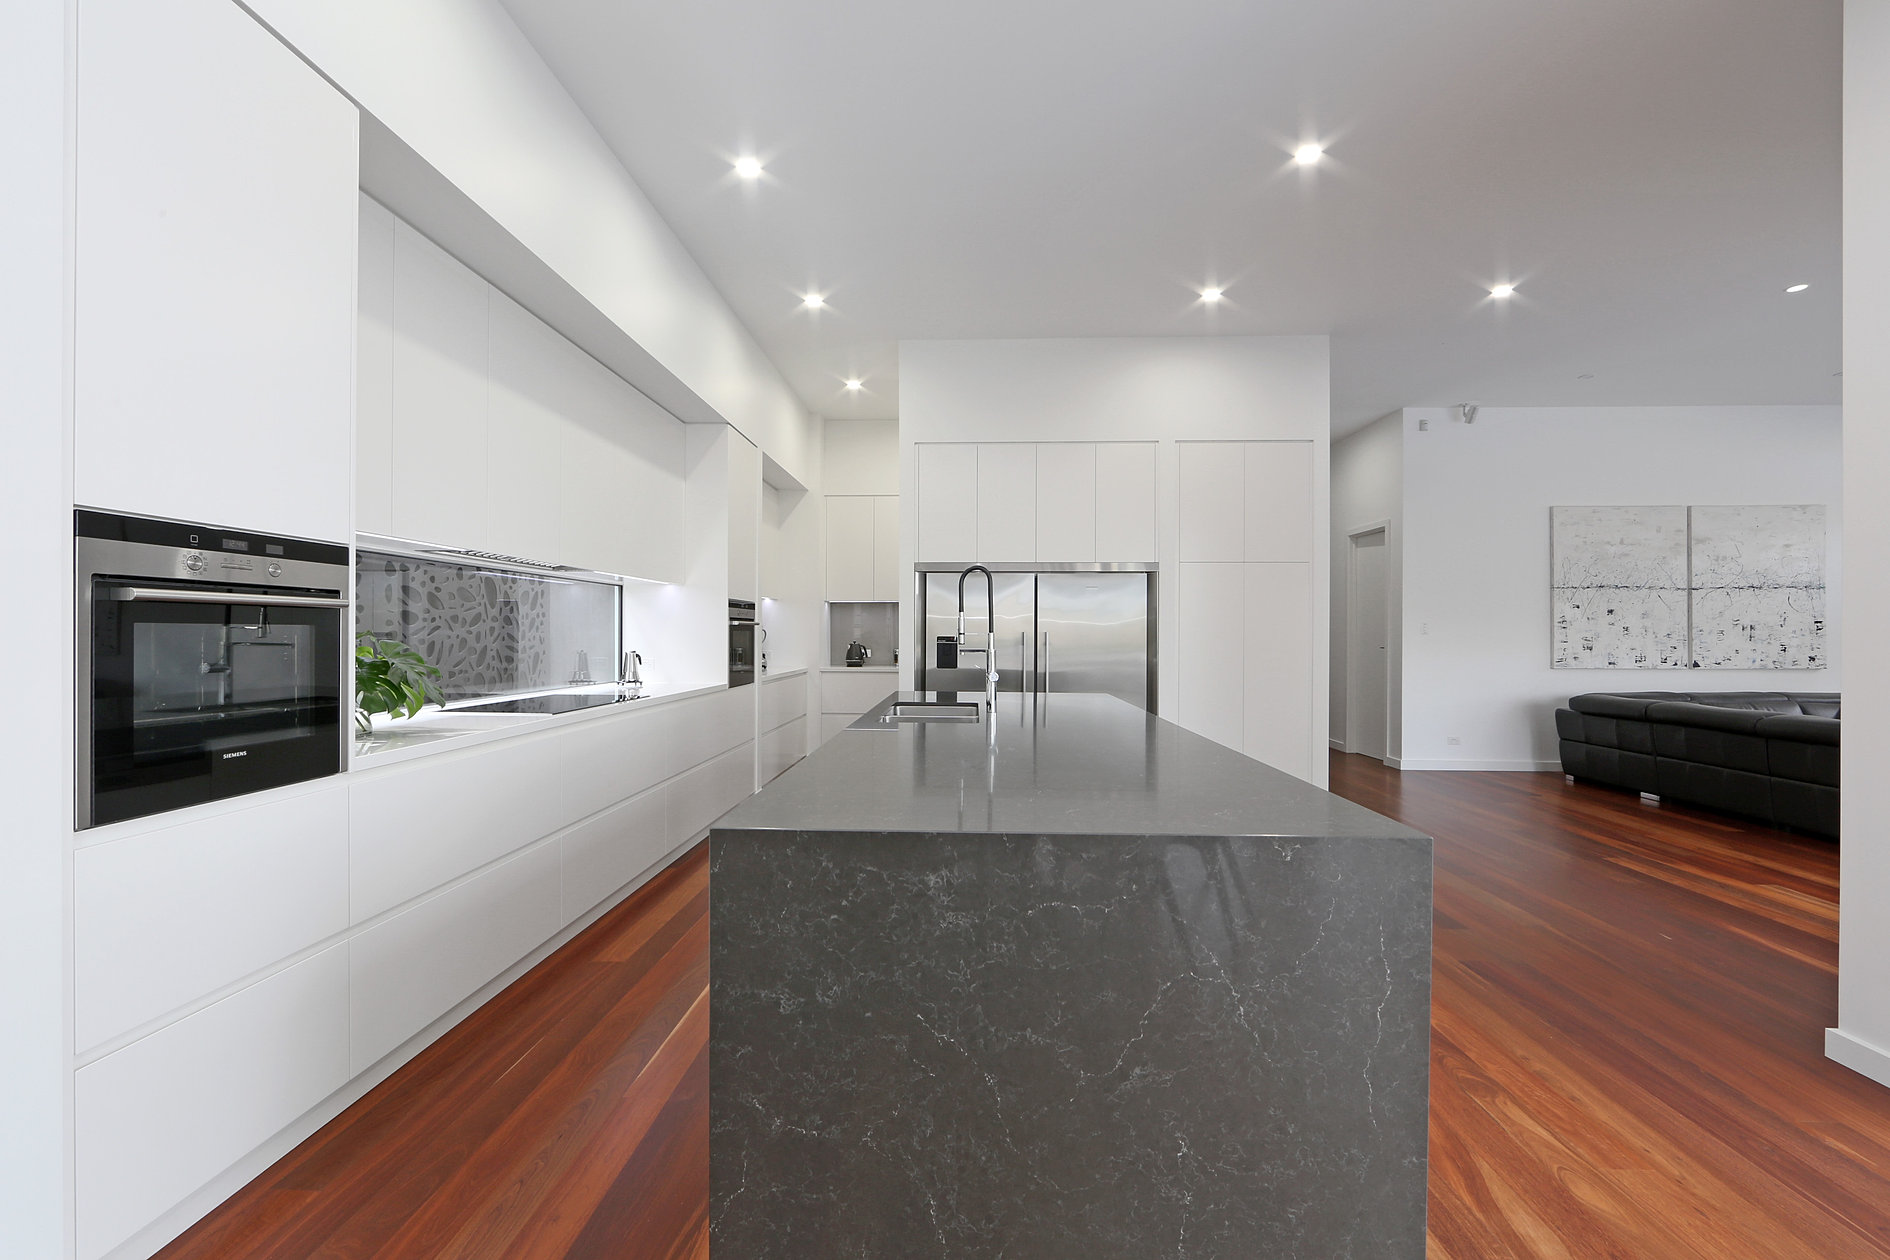 Exellent kitchen design melbourne renovation brisbane for Modern kitchen designs melbourne